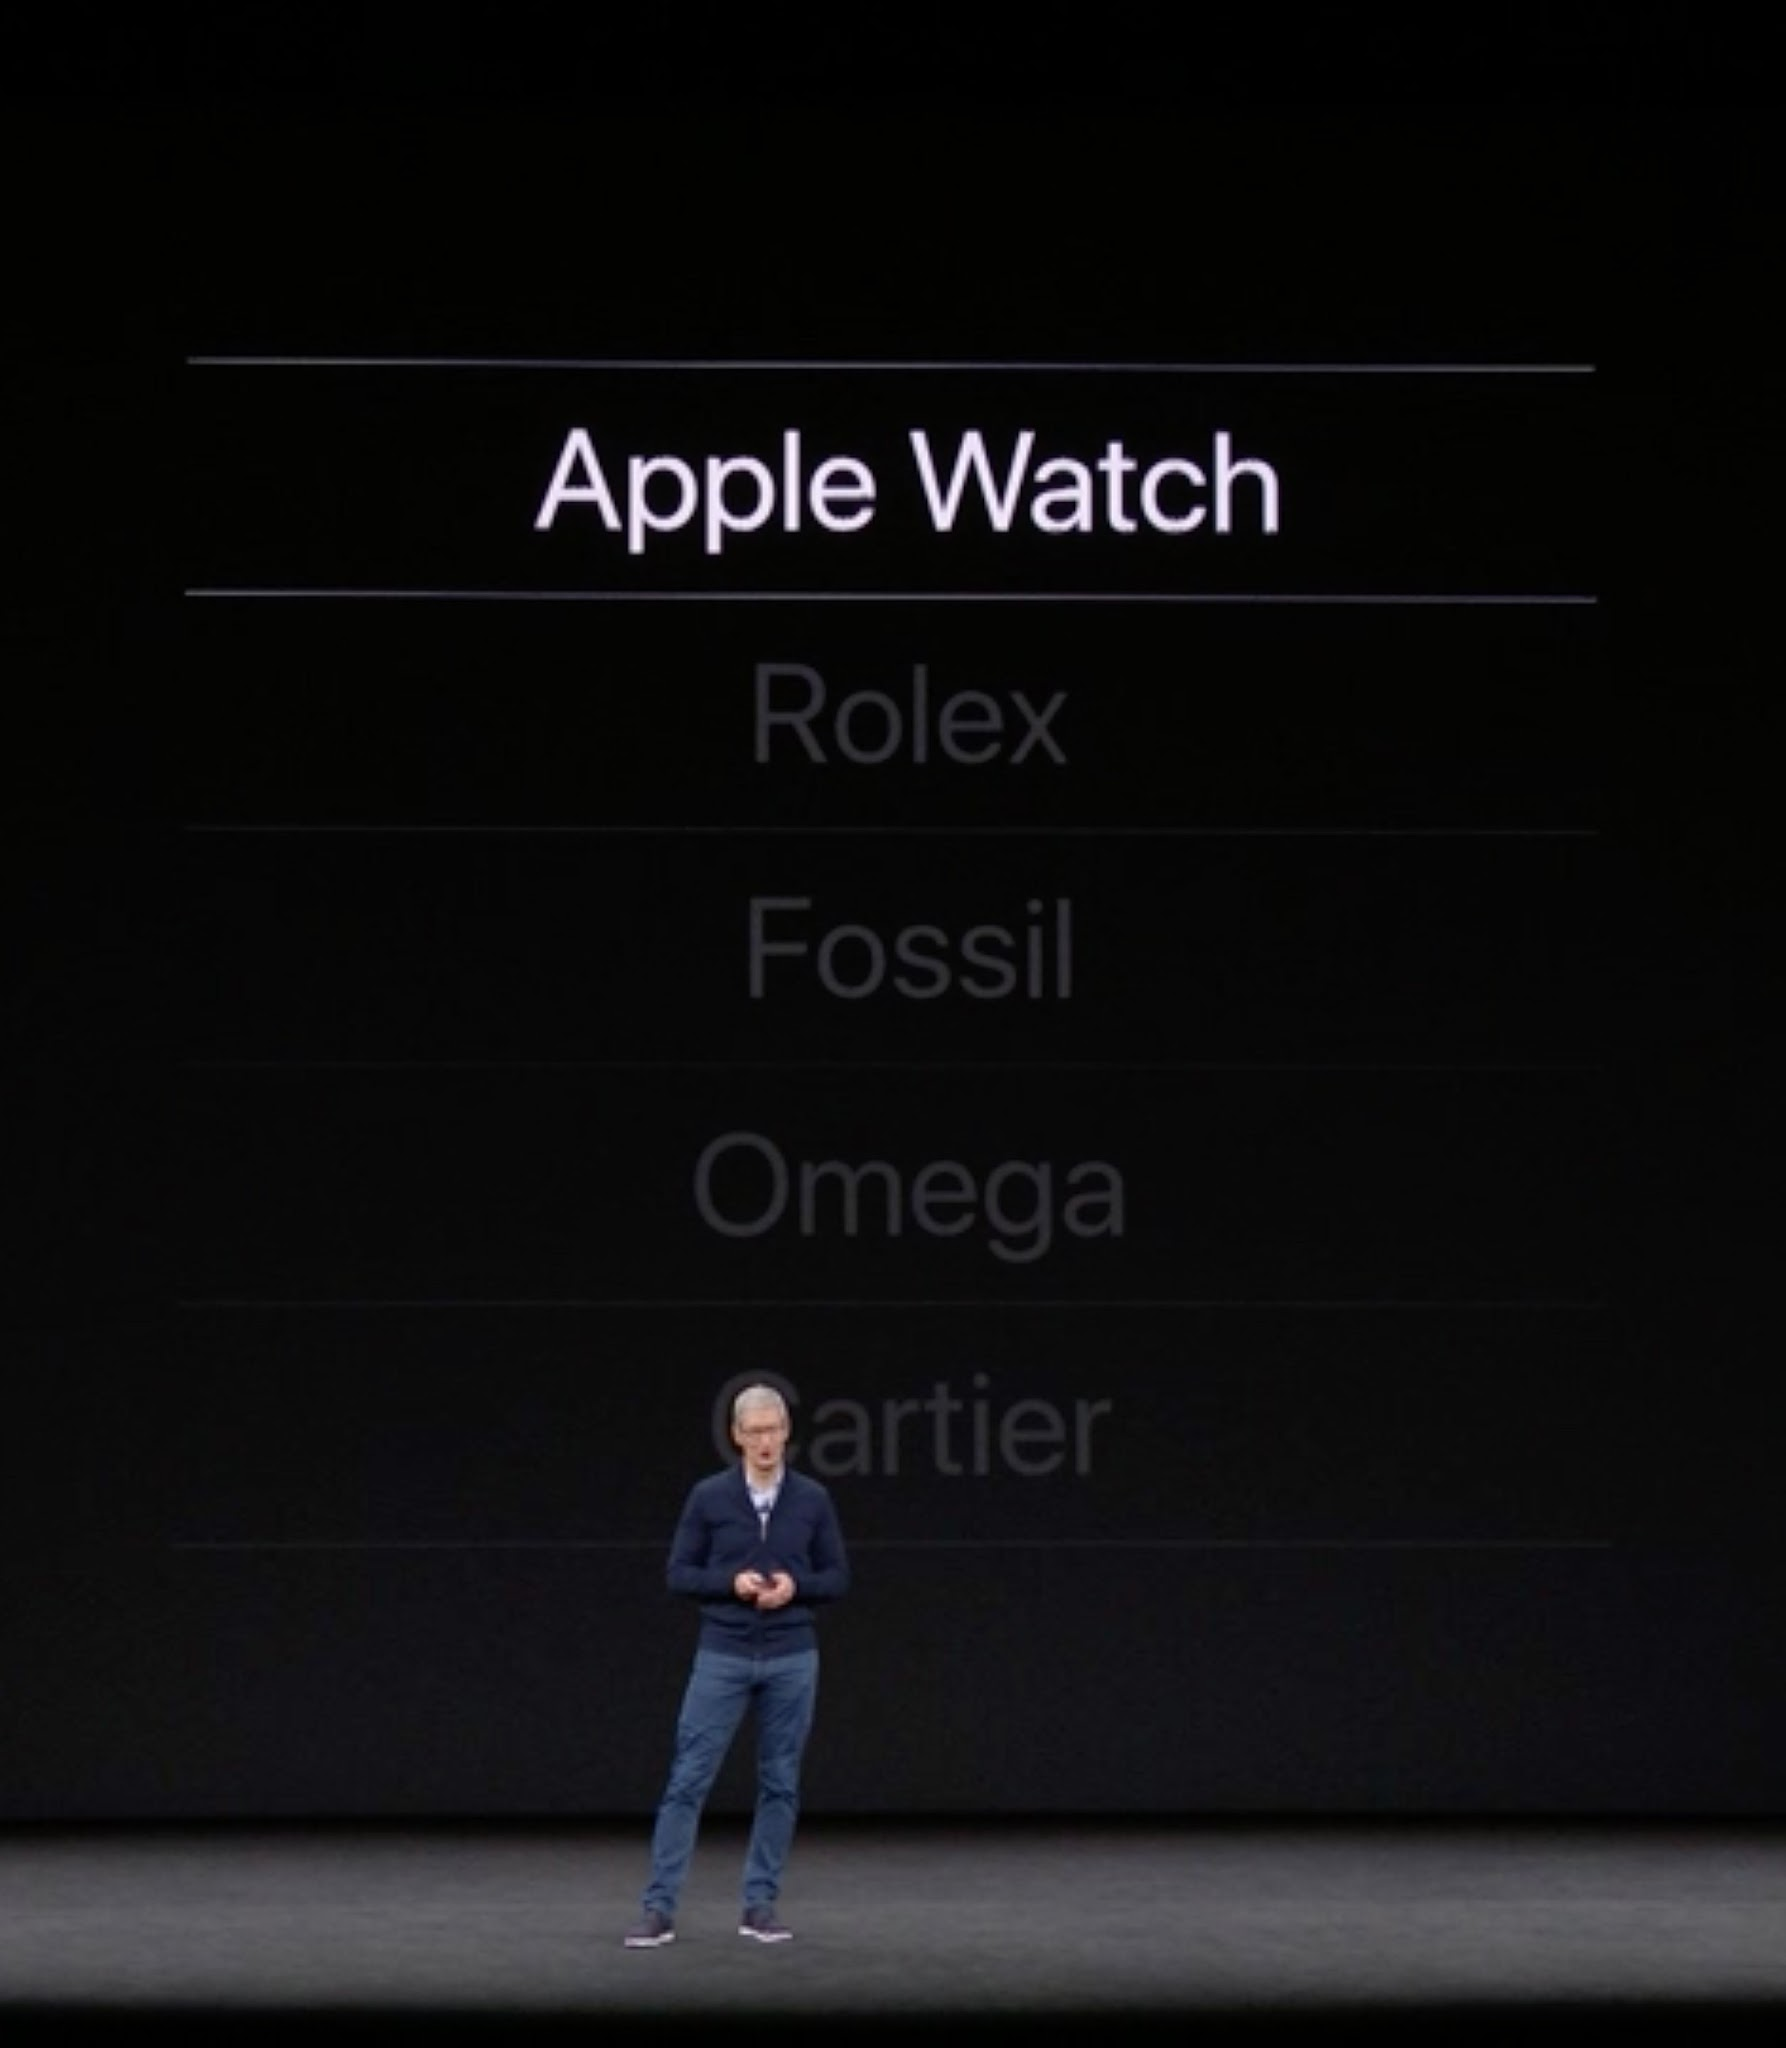 Sfondi per apple watch rolex